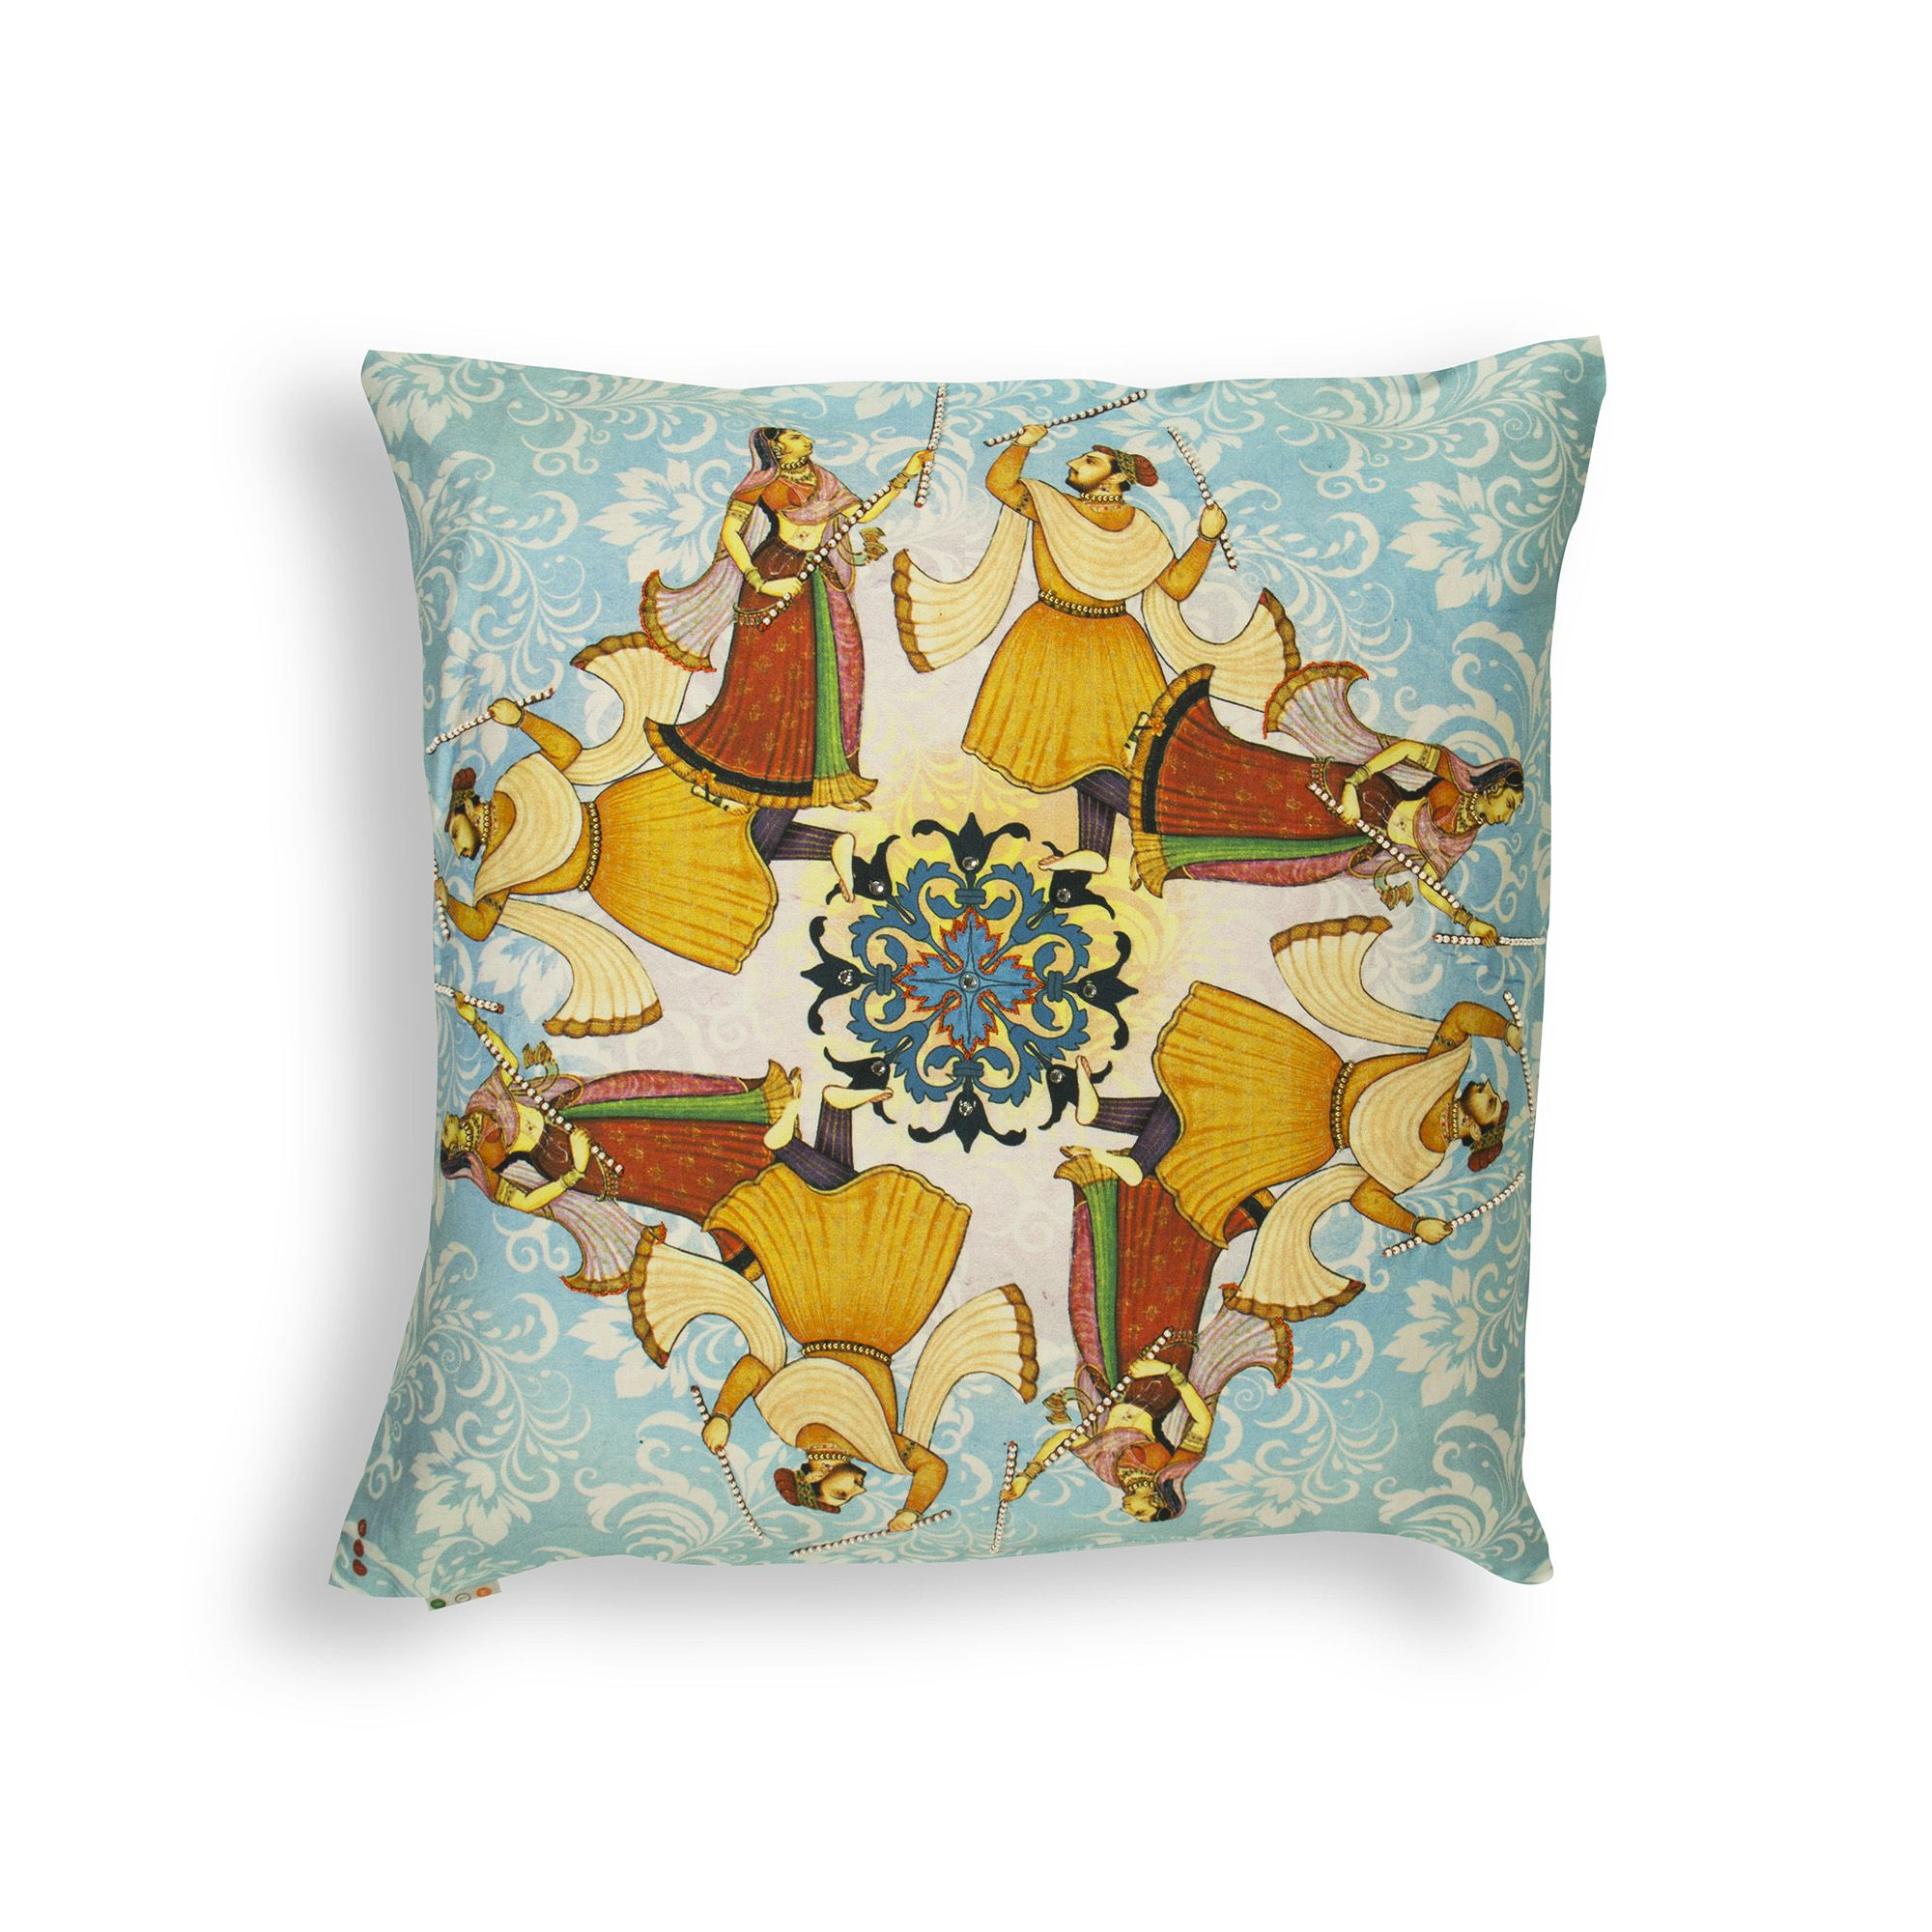 GARBA CUSHION COVER  Buy Here -http://madinindia.in/collections/cushion-covers/products/garba-cushion-cover MRP - Rs 1200